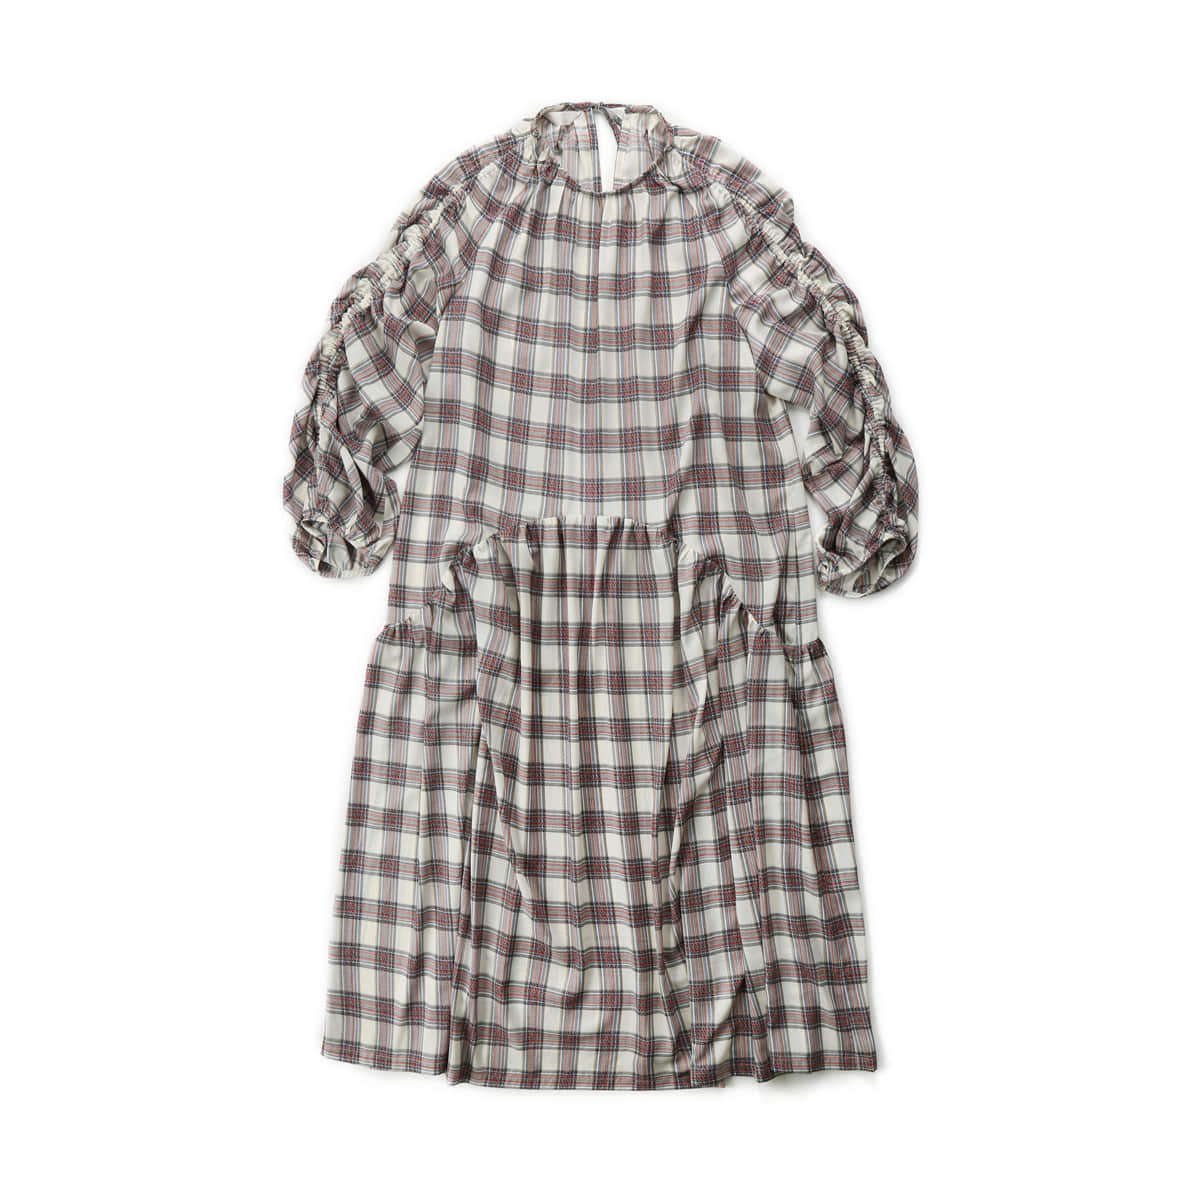 [MUSED] ONIRIQUE LUCING DRESS 'MULTI CHECK'